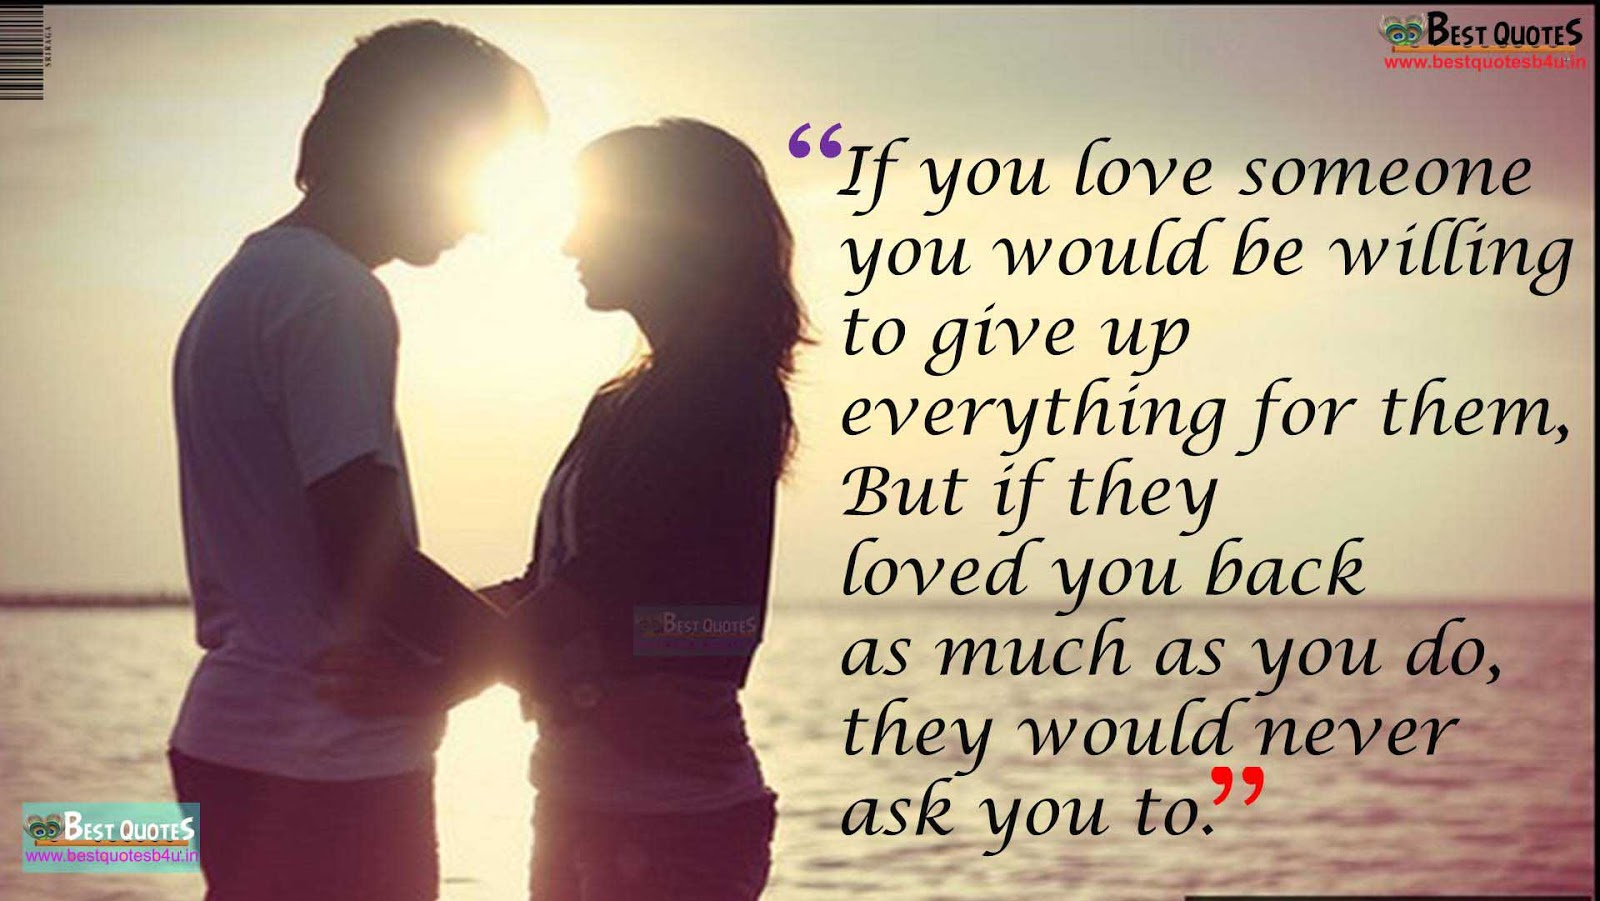 Heart Touching Love Quotes : Heart touching love quotes 62 BestQuotesb4U English Telugu ...